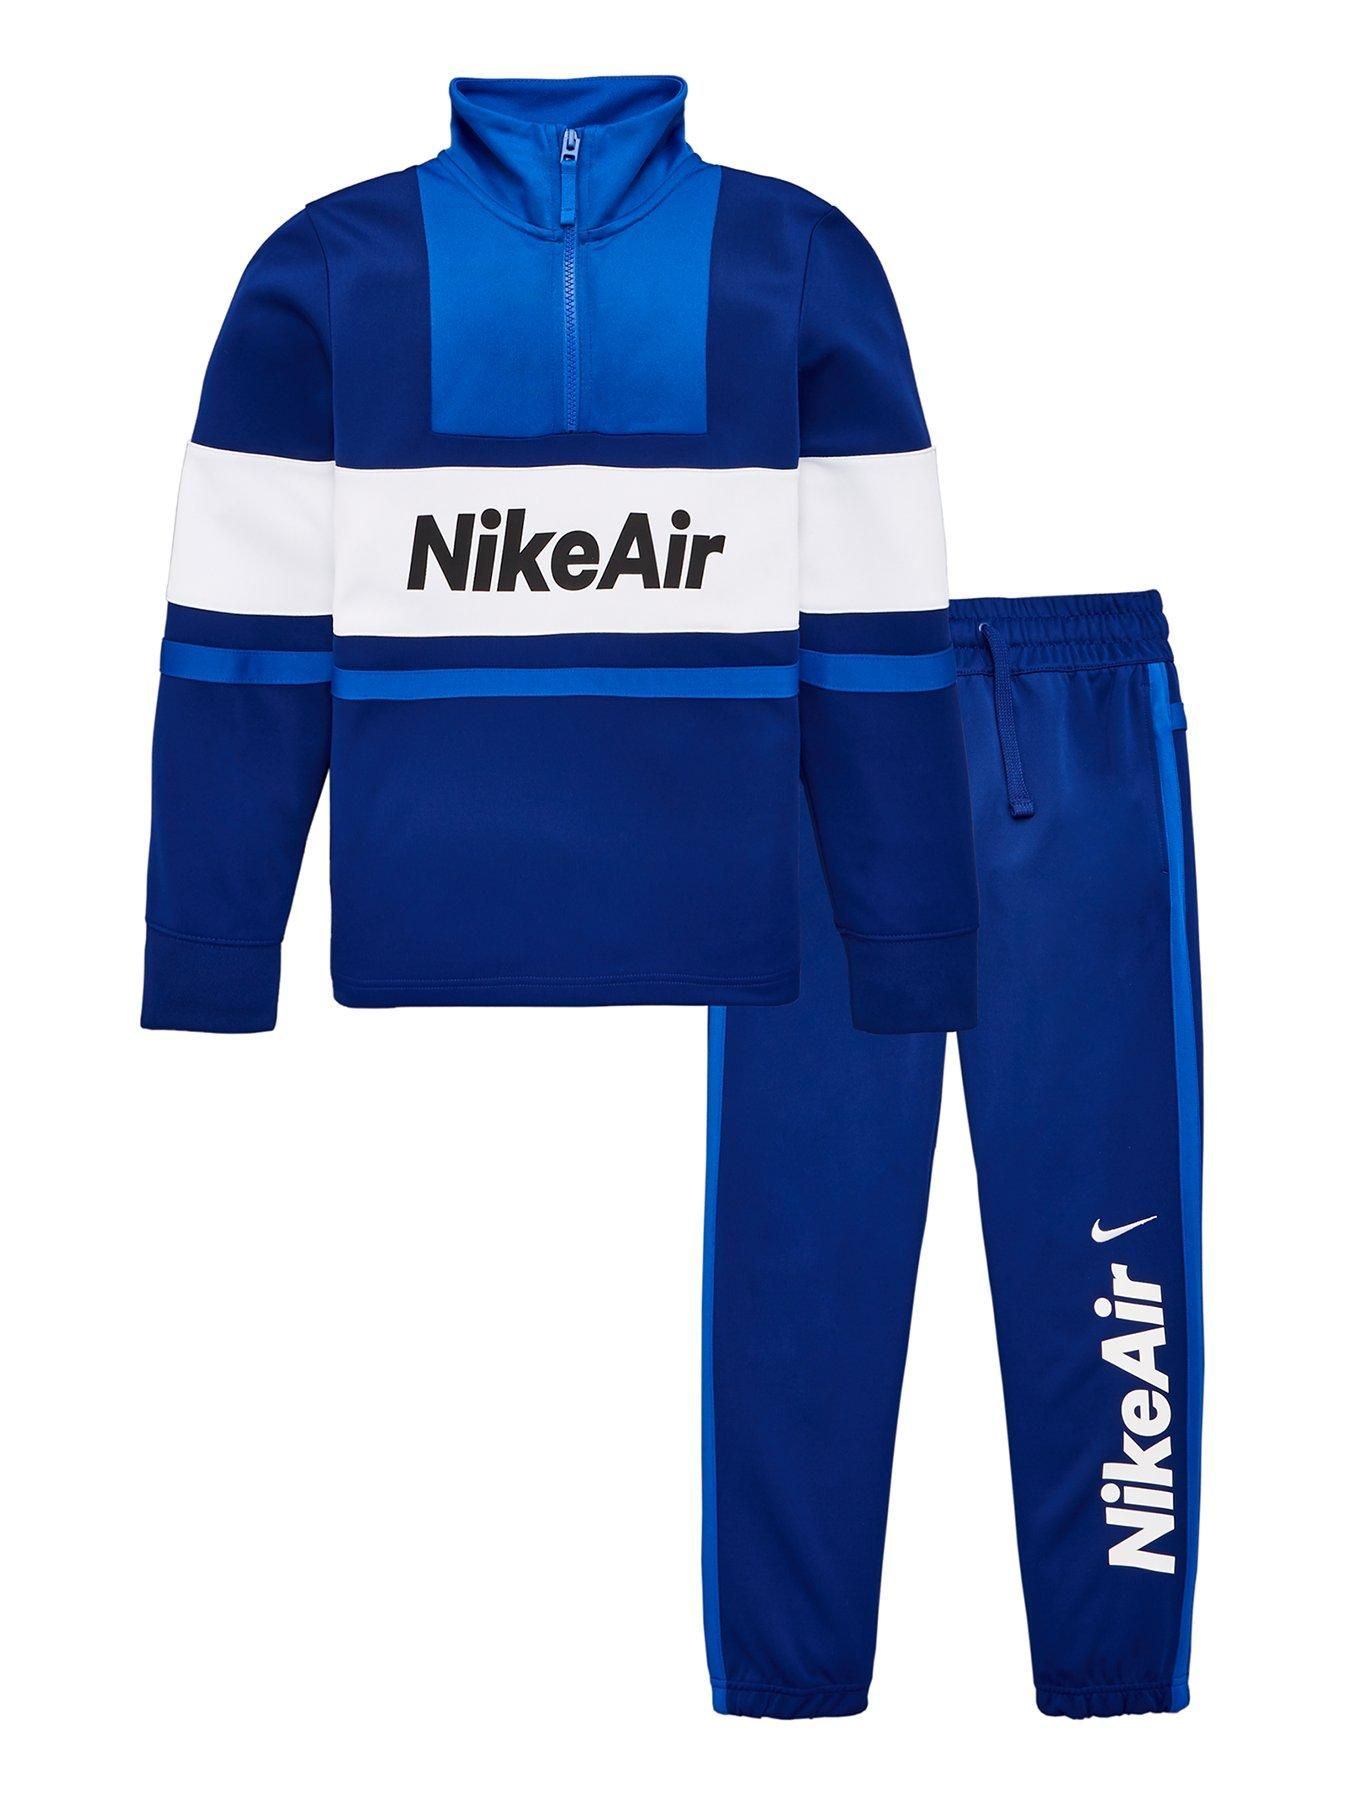 NSW Air Older Boys Tracksuit Royal Blue in 2020